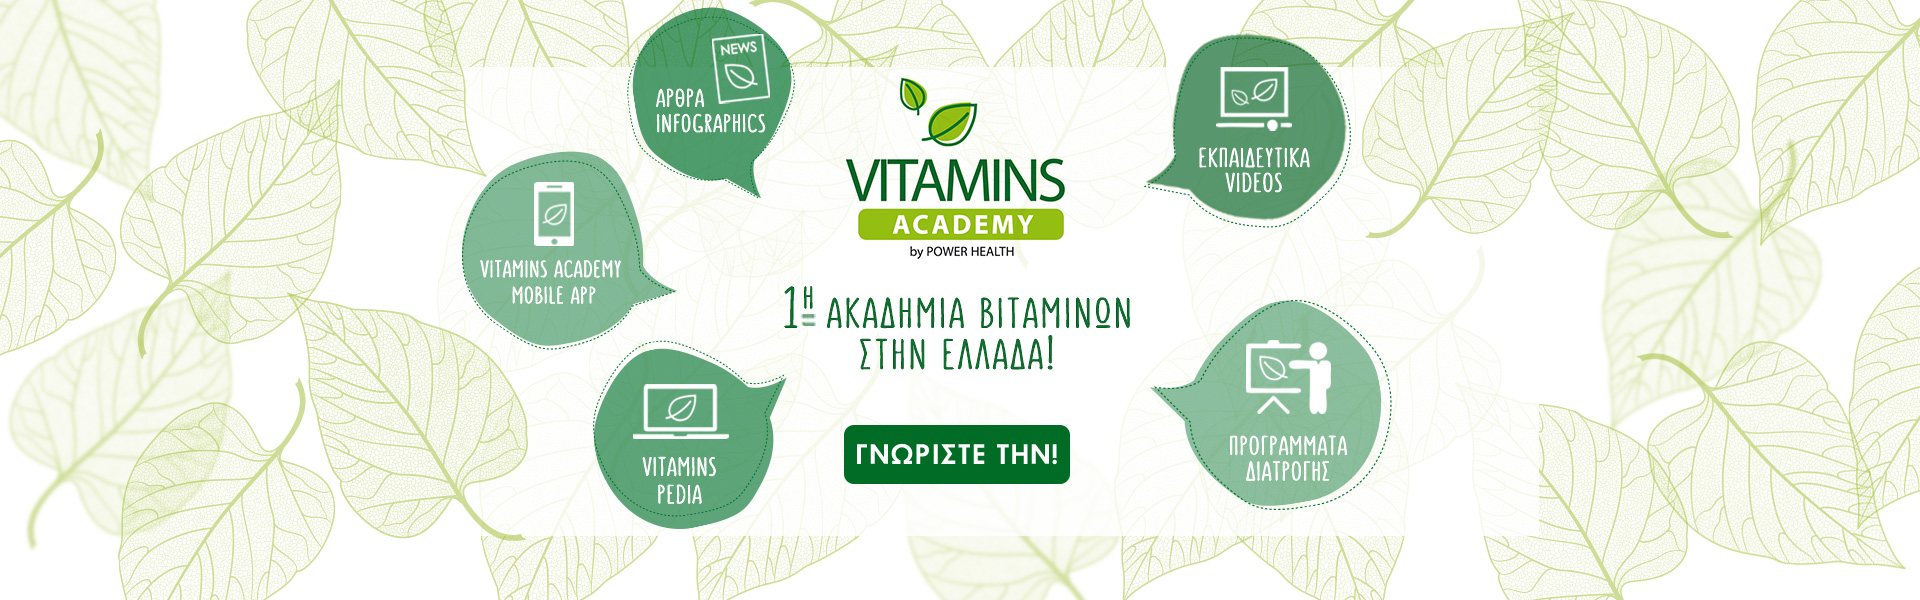 vitamins_academy_main_site